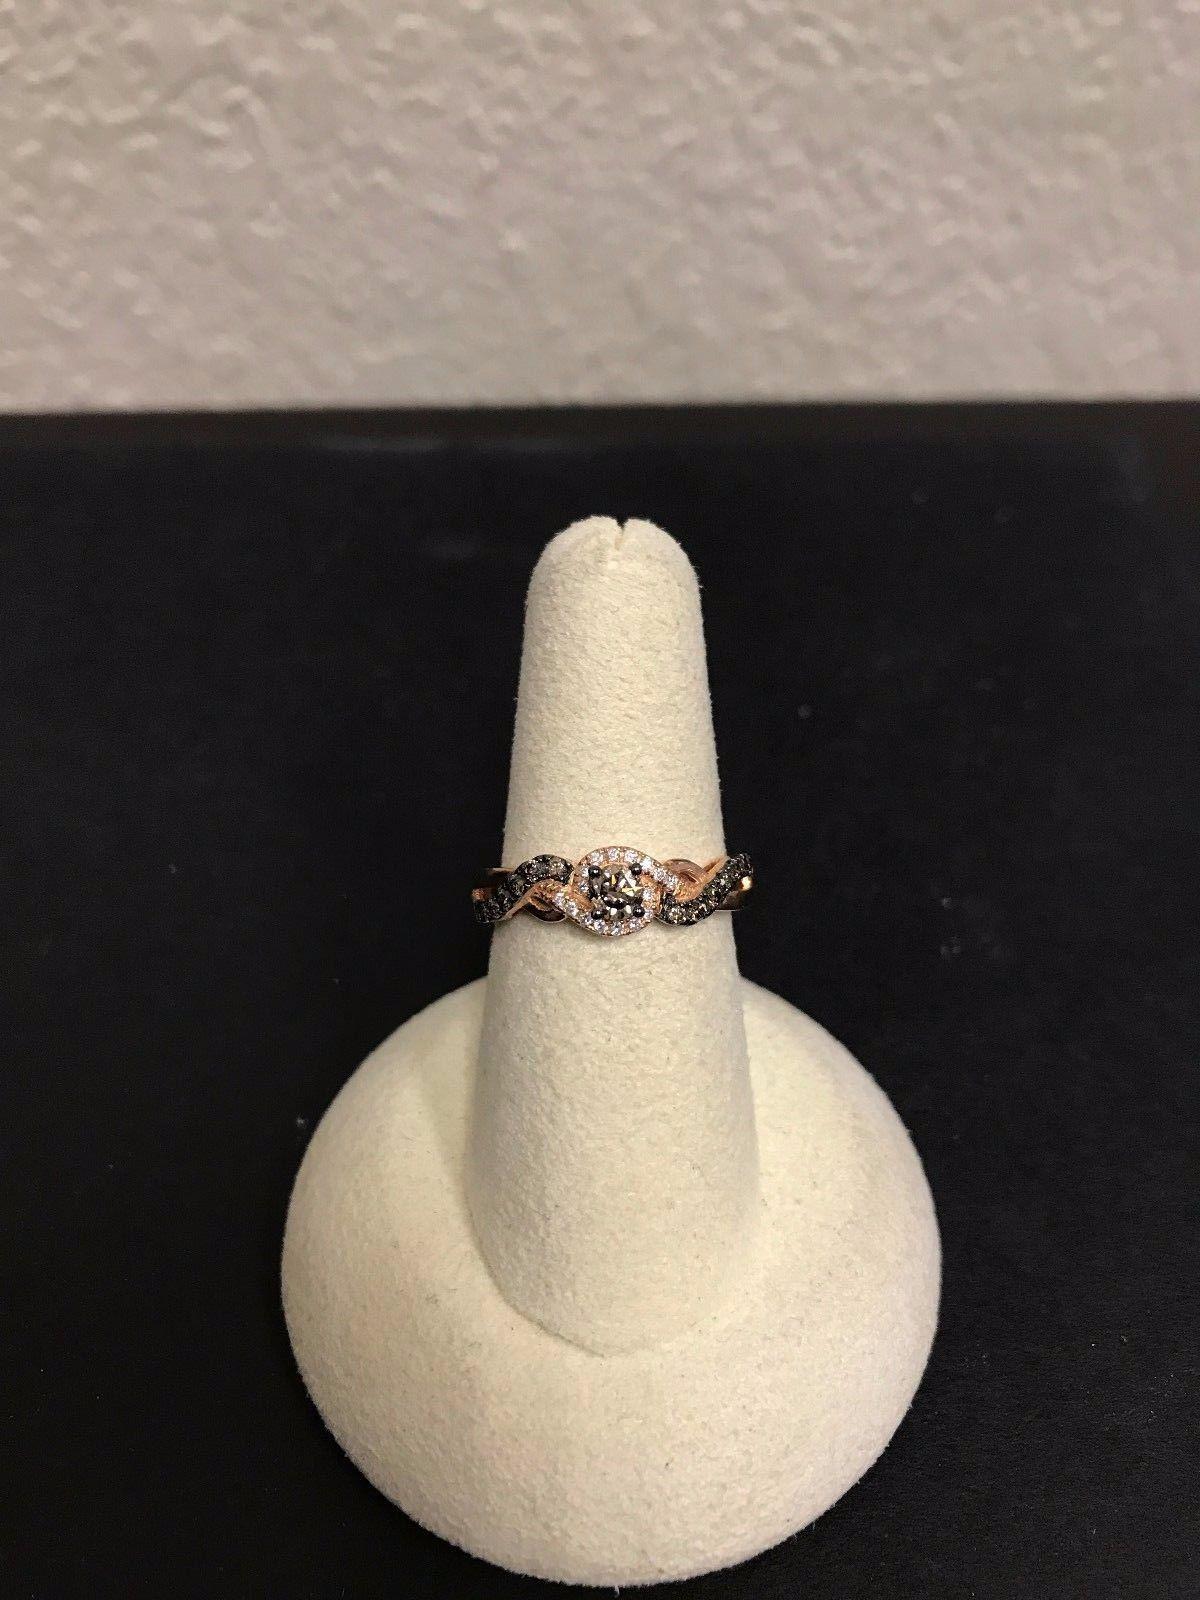 New Le Vian  WIZD 5 14kt  Rose Gold  Diamond Ring From Chocolatier Collection